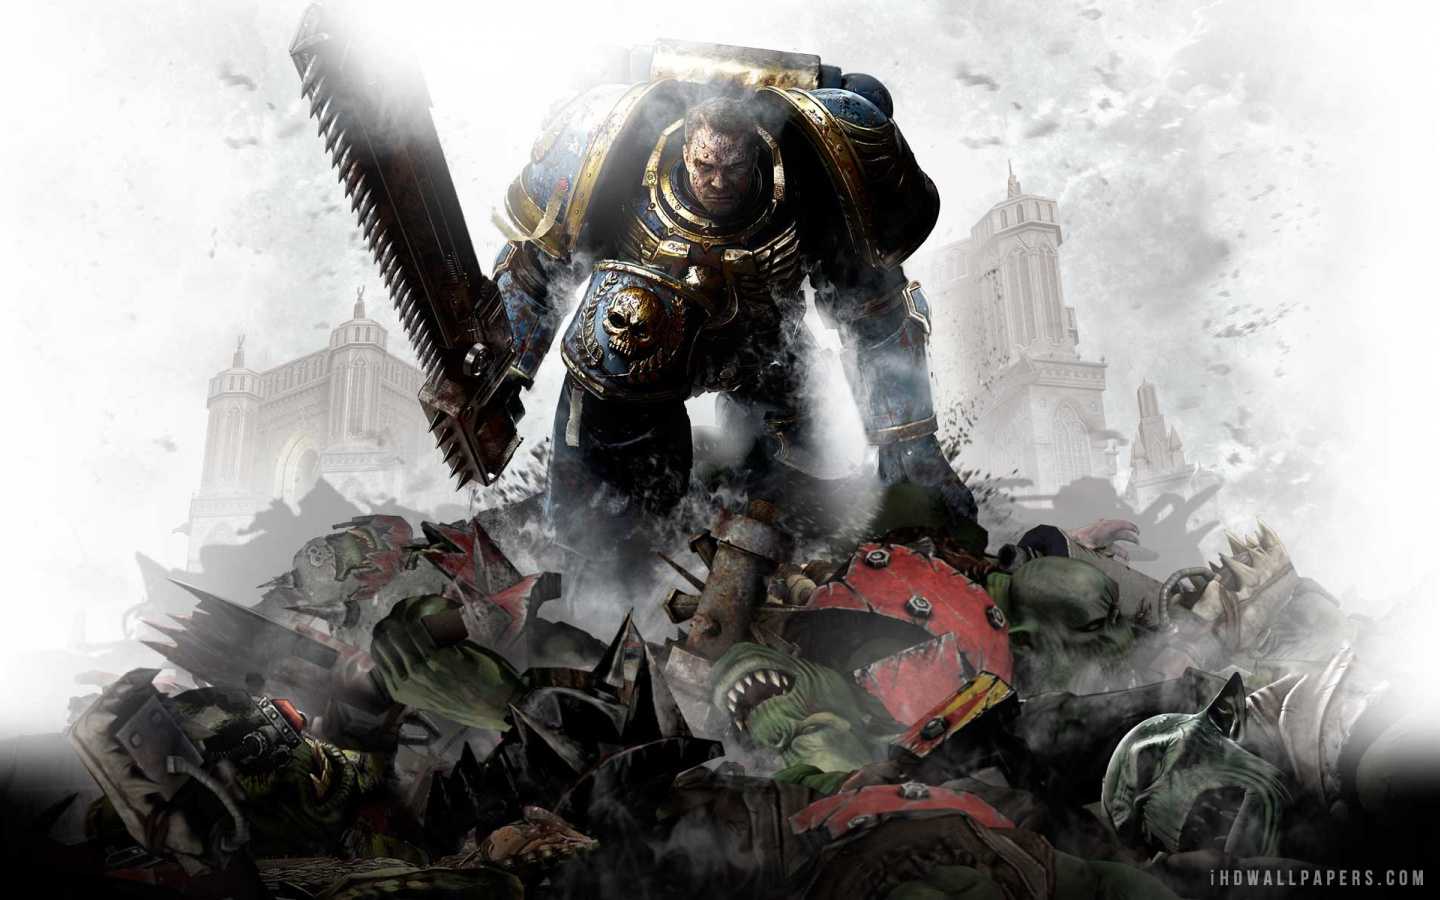 Warhammer 40000 Space Marine HD Wallpaper   iHD Wallpapers 1440x900